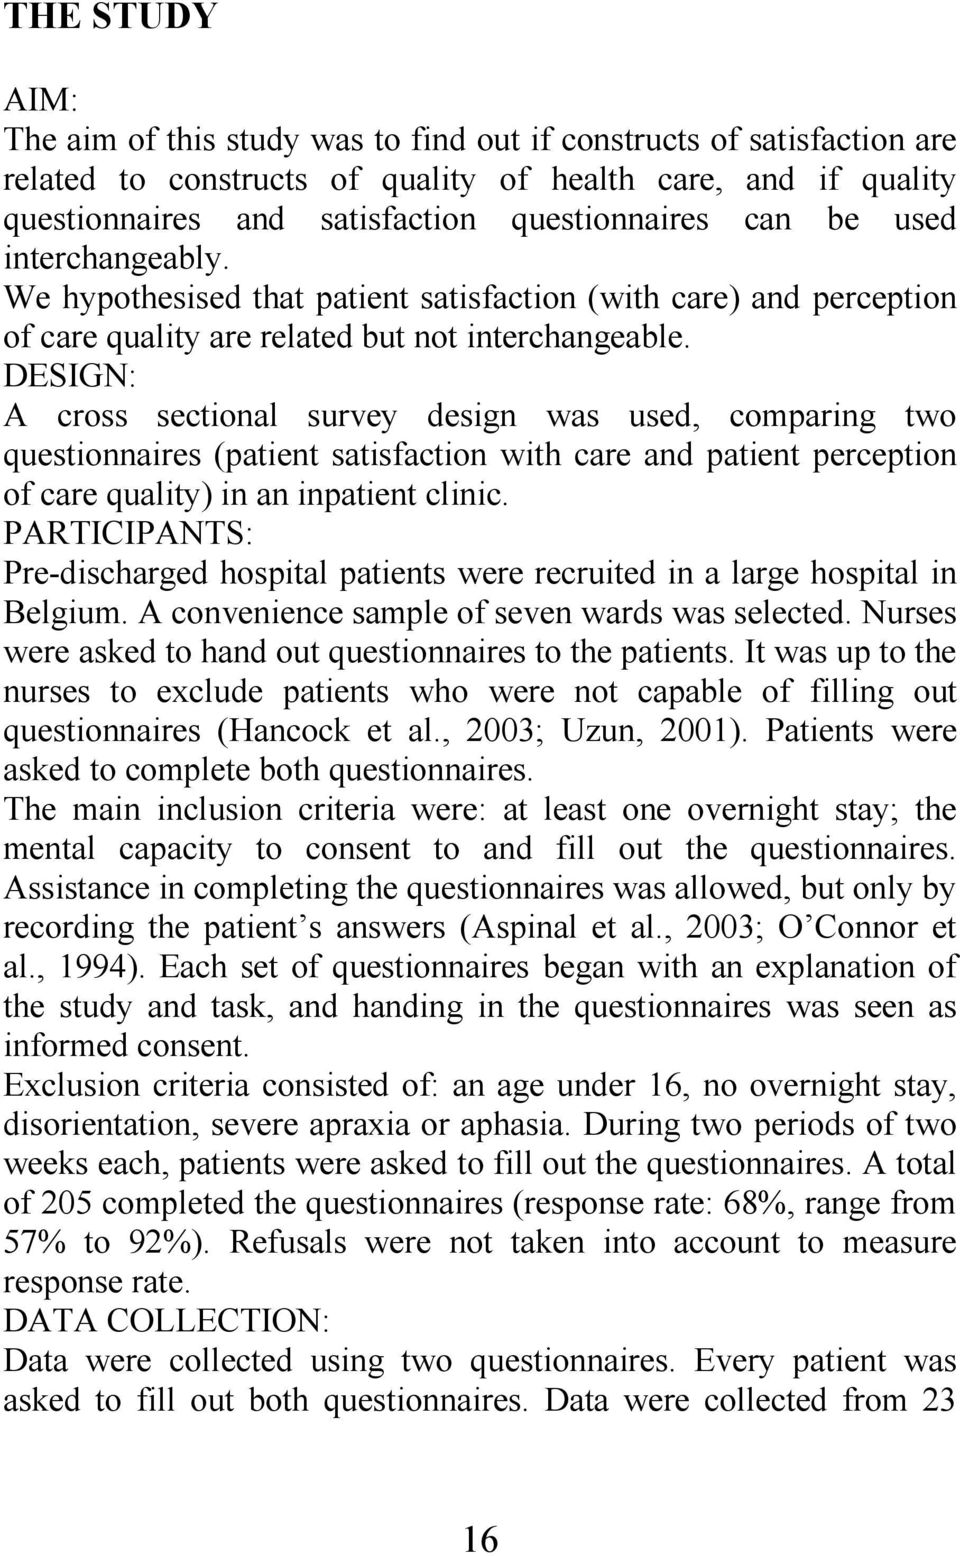 DESIGN: A cross sectional survey design was used, comparing two questionnaires (patient satisfaction with care and patient perception of care quality) in an inpatient clinic.